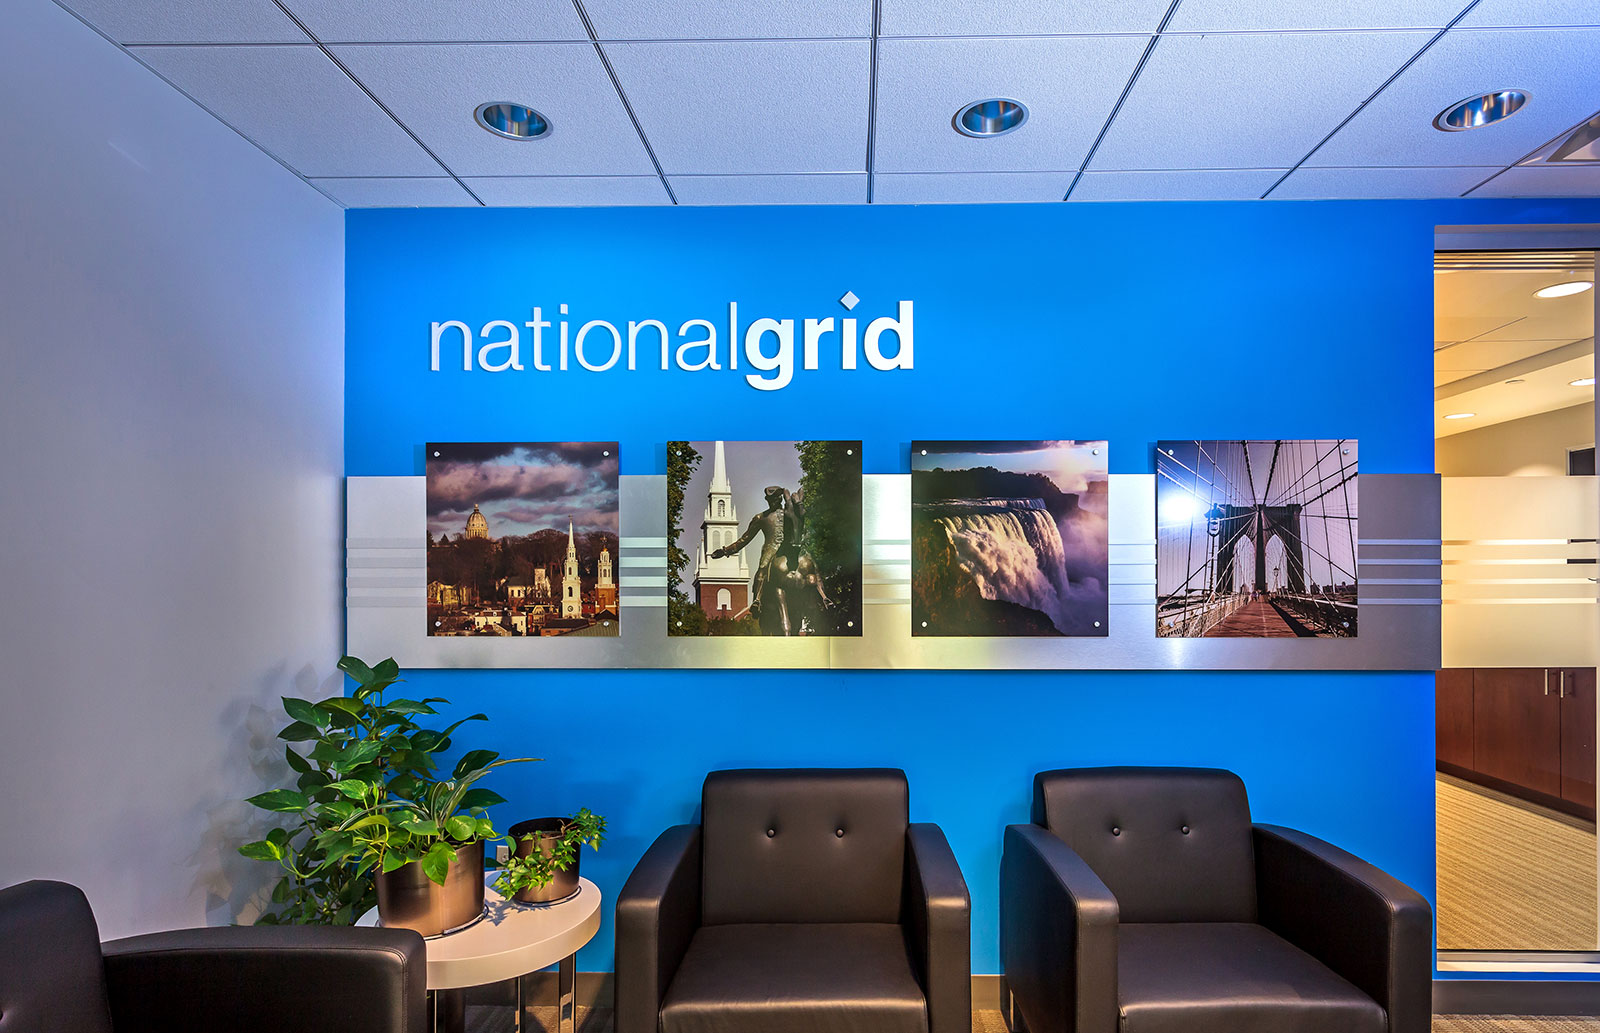 Commercial Branded Environment, �National Grid Corporate Lobby, Graphic Design